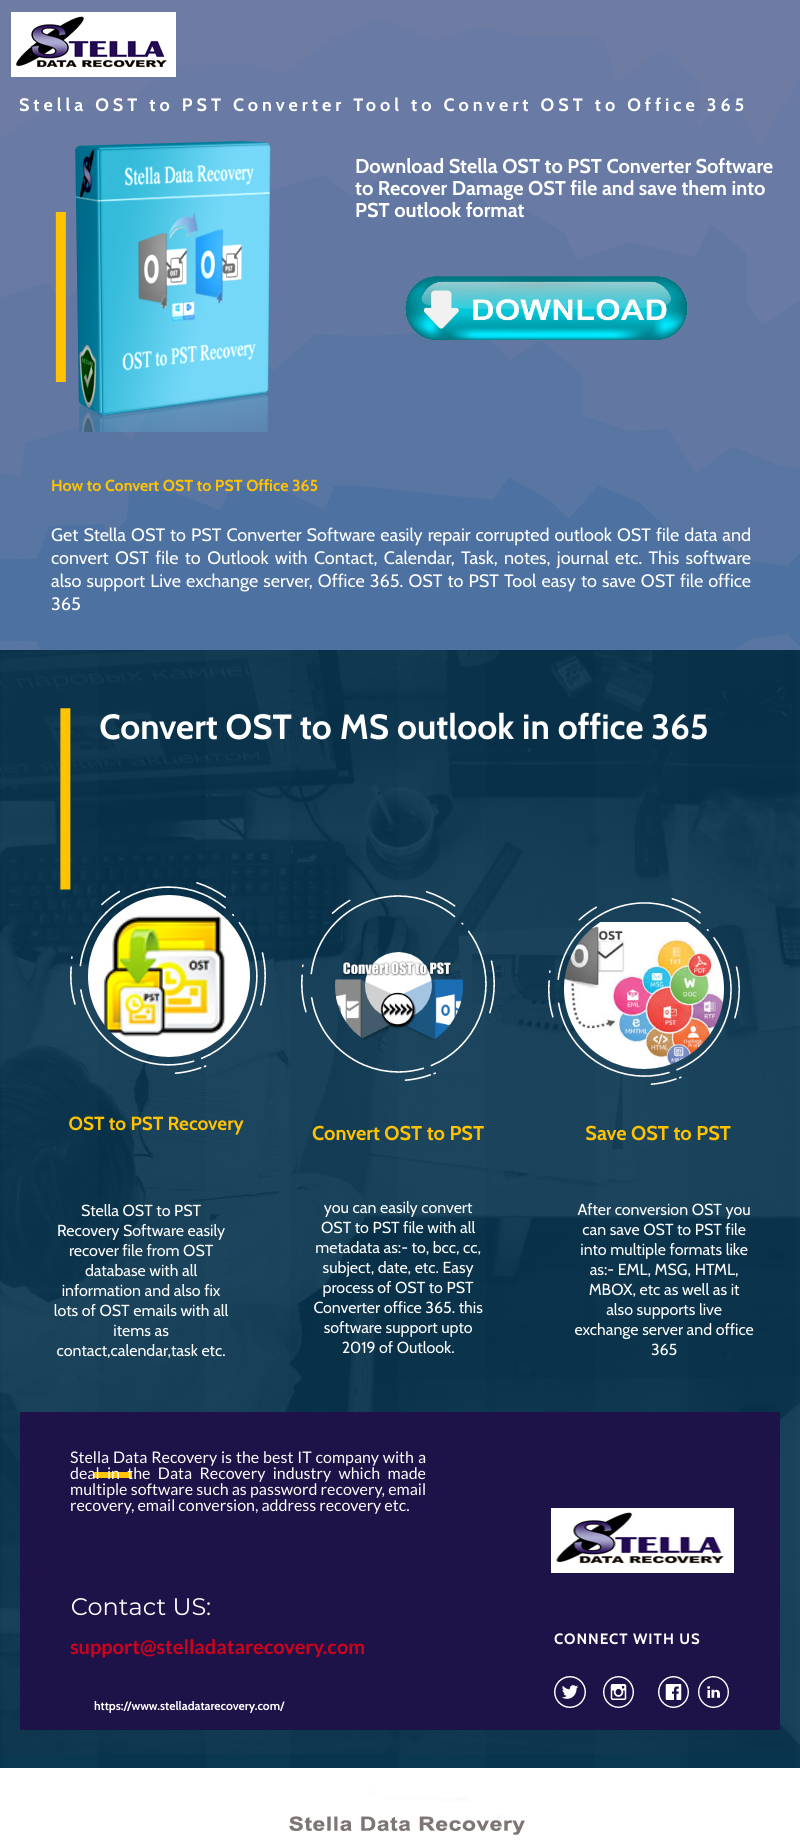 RE: Ost to pst converter software